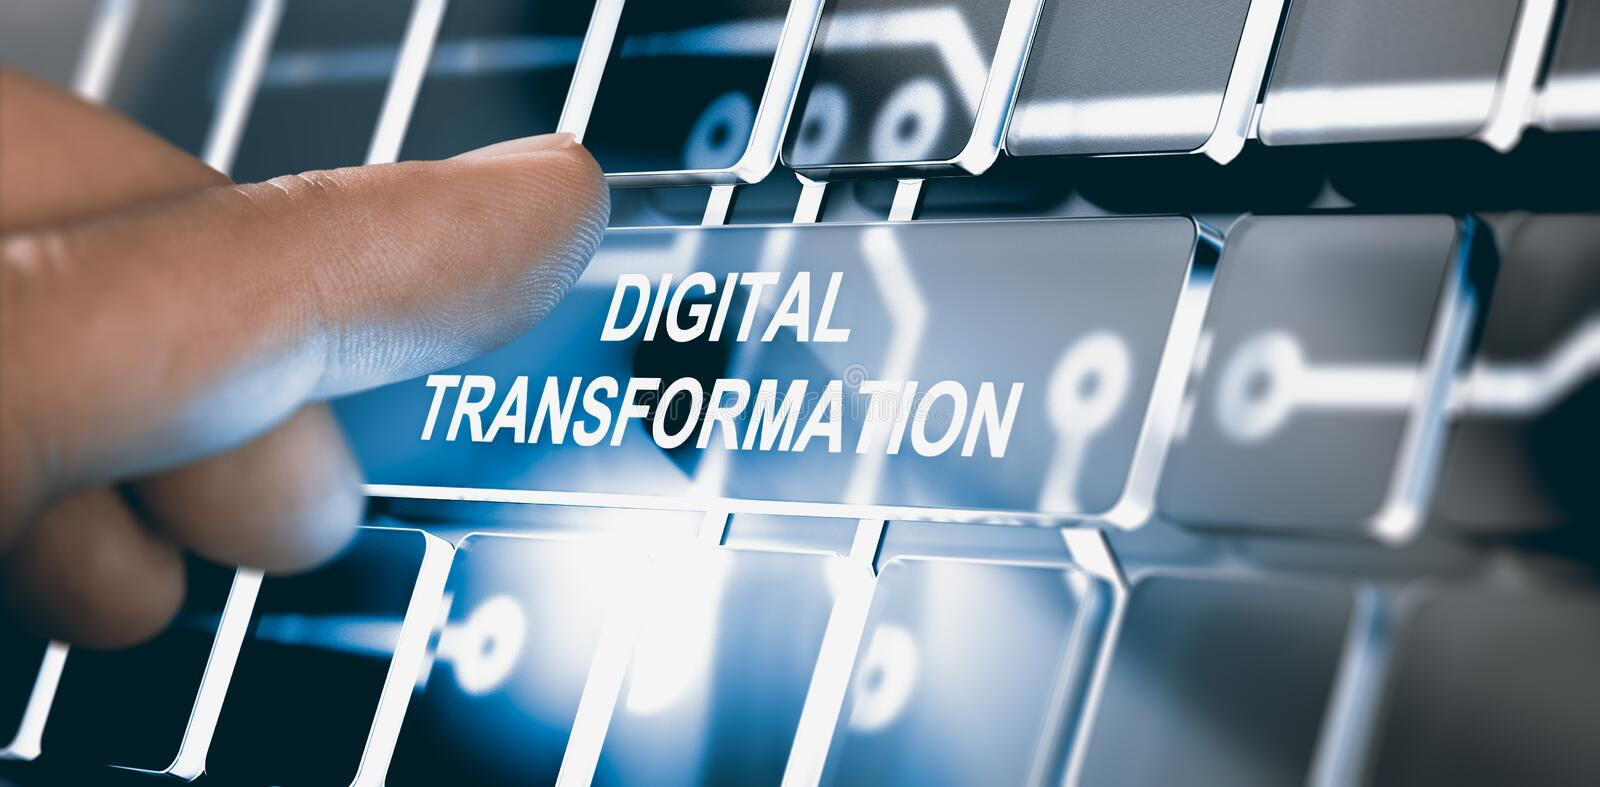 Digitalisering, Digitaal Transformatieconcept